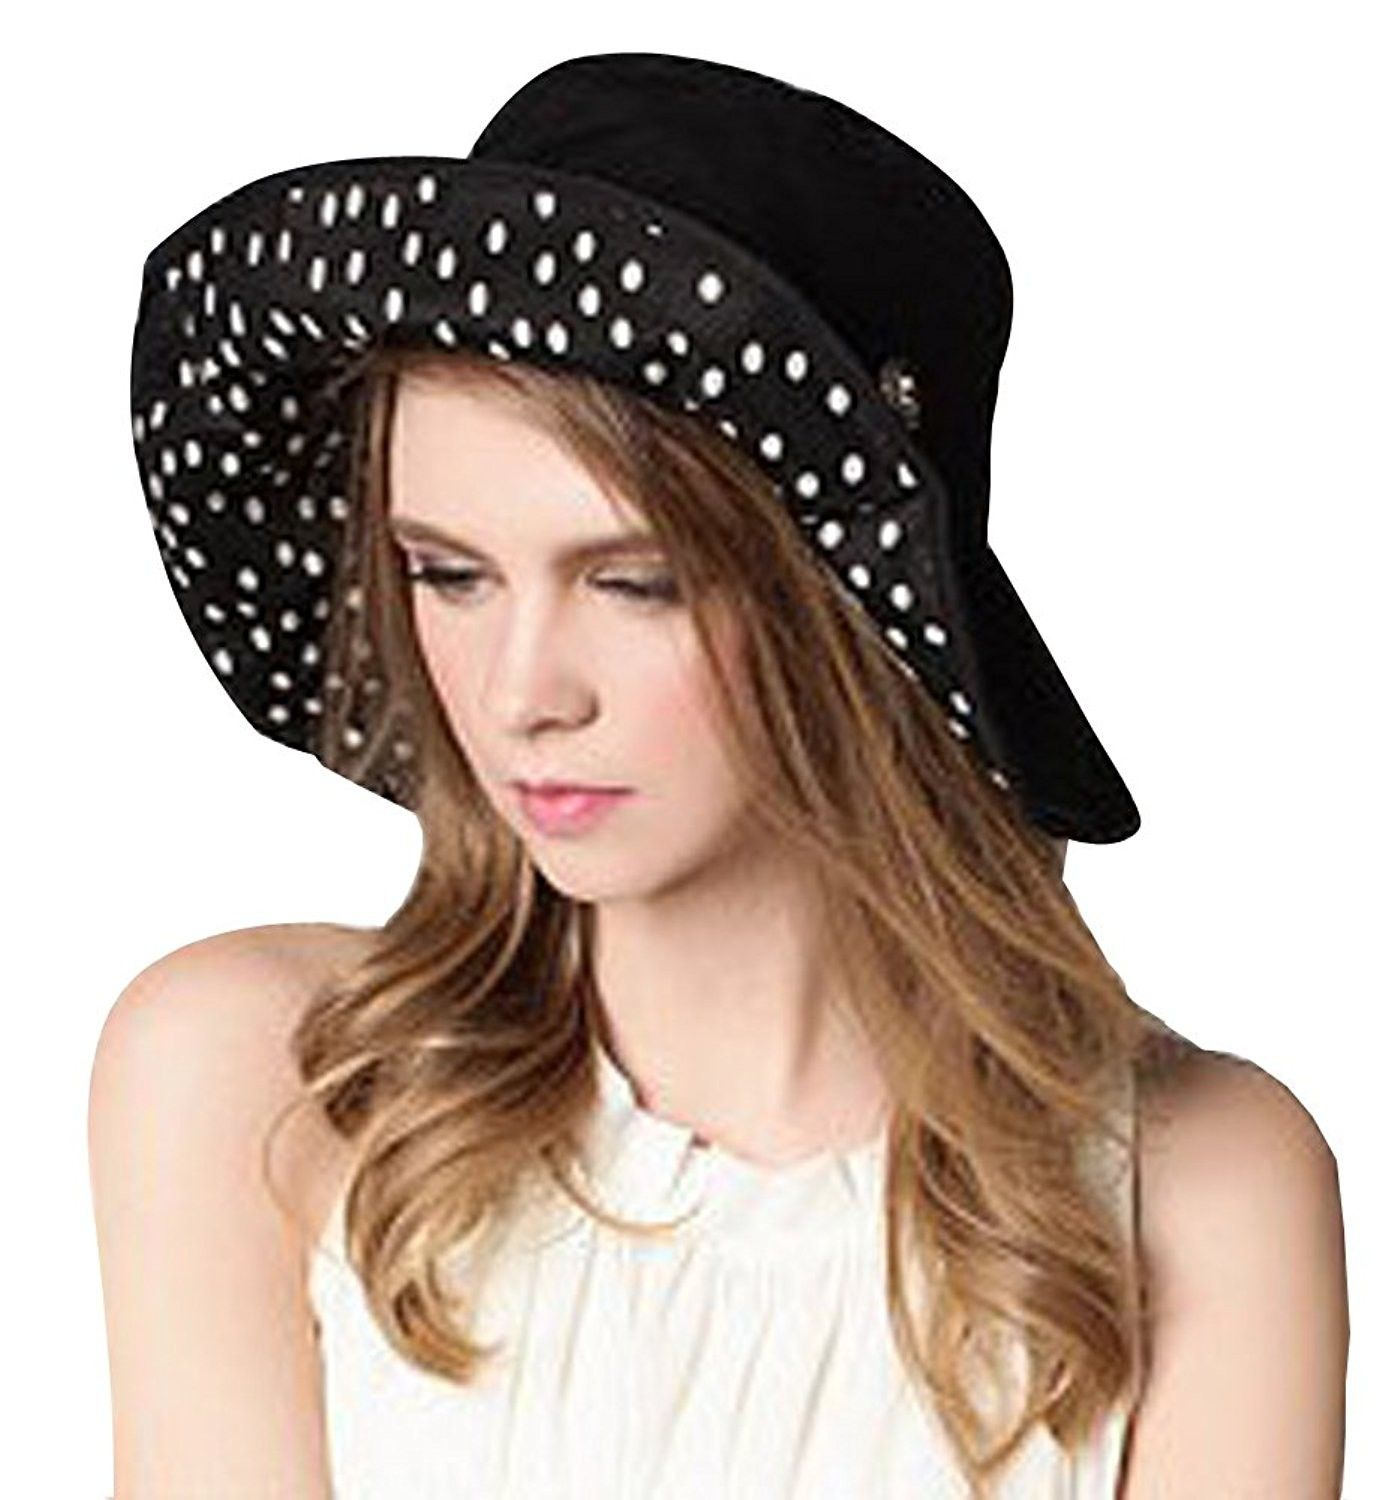 fbca4ce87ed Womens Large Brim Floppy Foldable Roll up UPF 50+ Beach Sun Hat ...